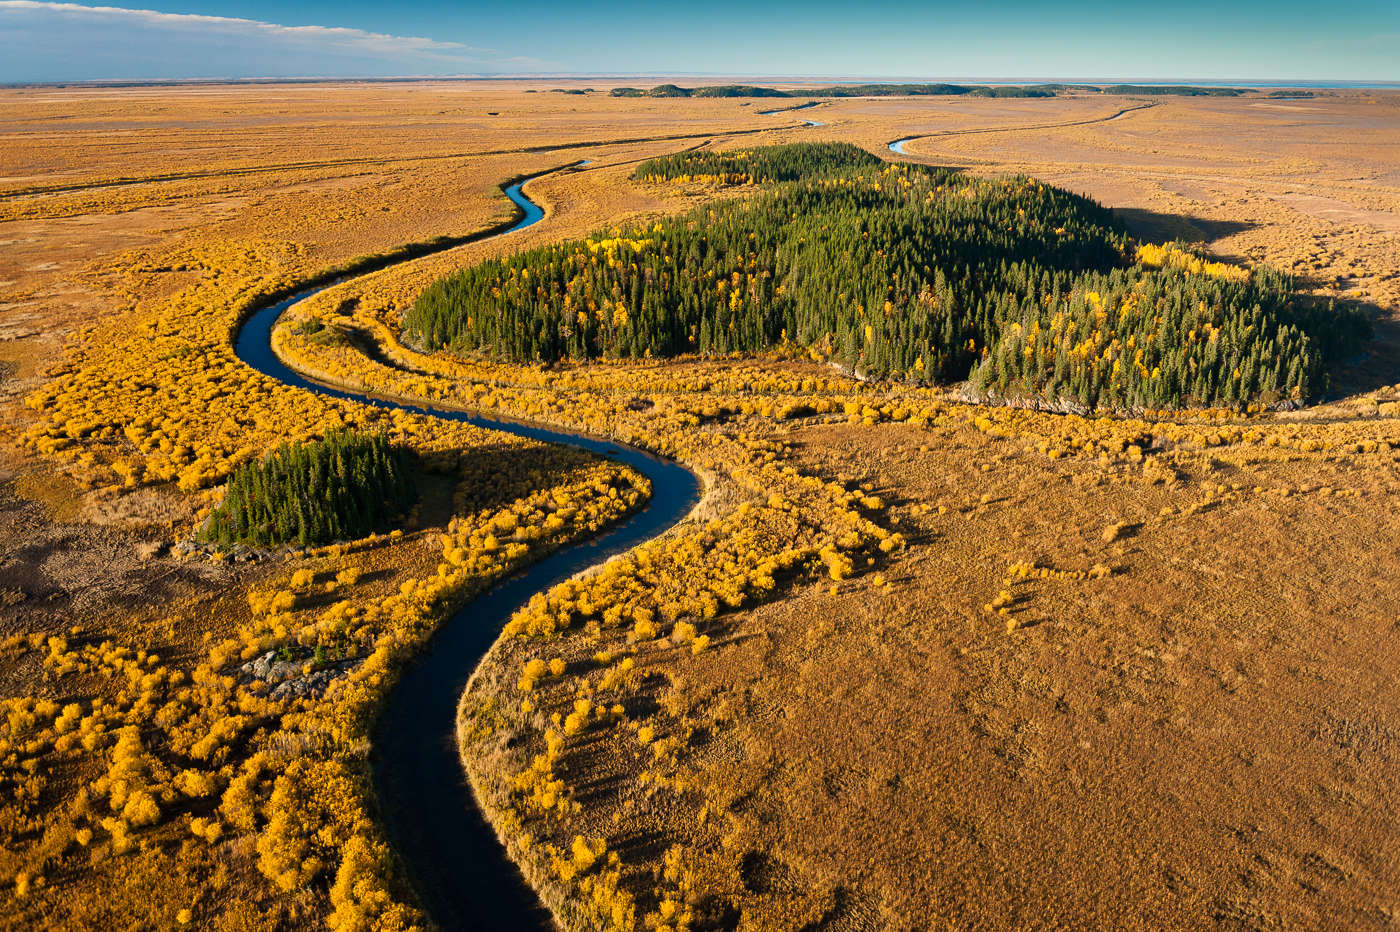 A tributary of the Slave River winds its way through the vast Athabasca Delta, the world's largest freshwater delta. A {quote}Ramsar{quote} designated site of international importance, both the toxic impact of the Tar Sands, as well as the vast amounts of water drawn from the Athabasca River which flows into it, threaten its ecological integrity.